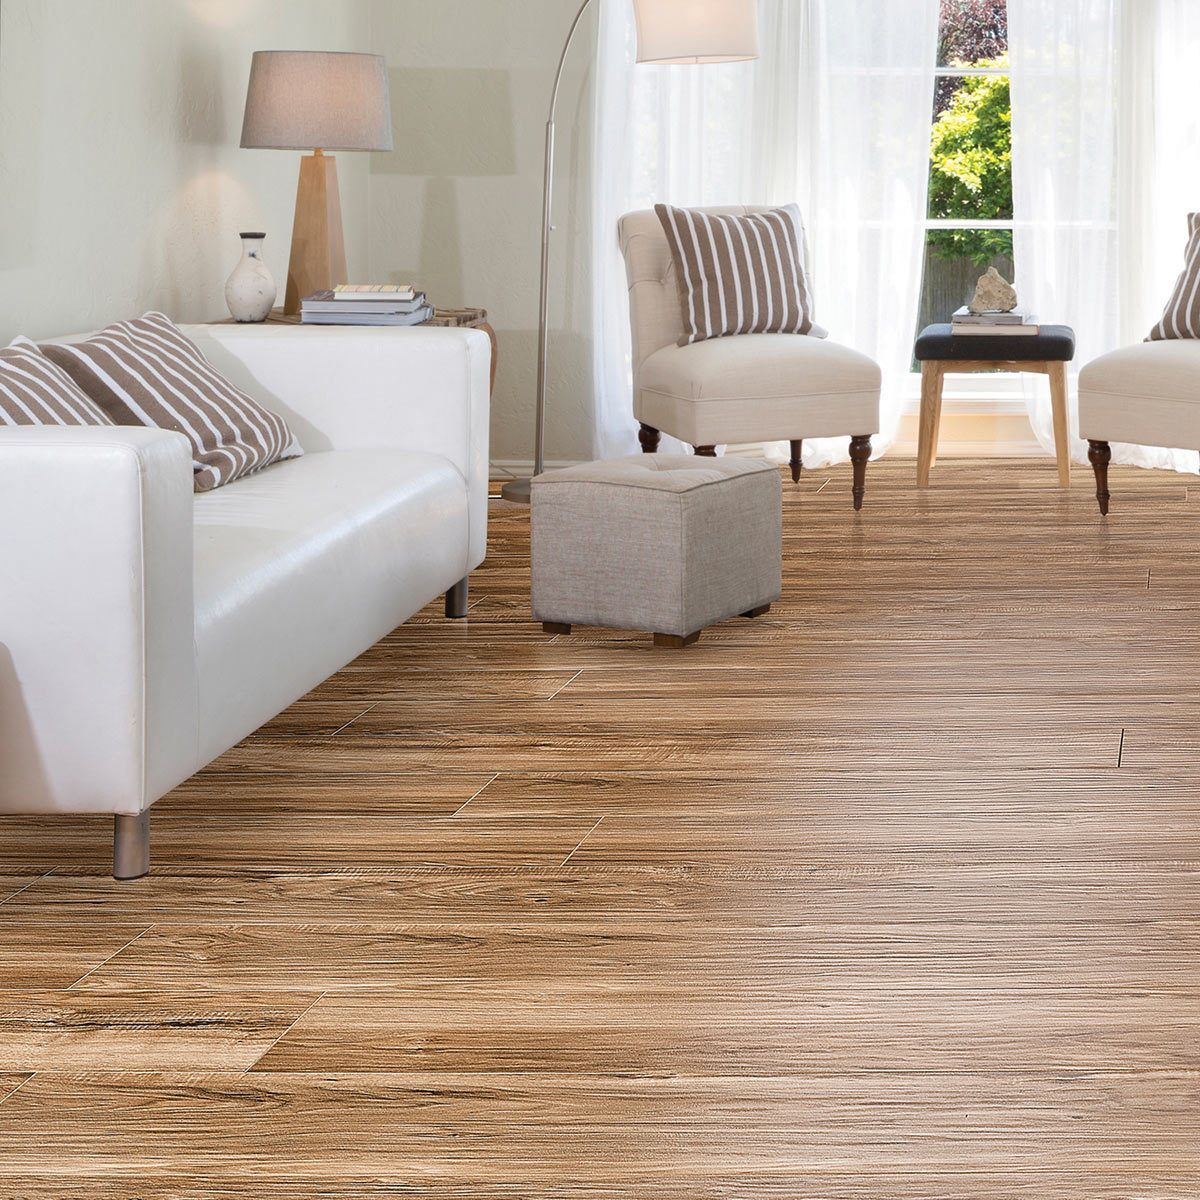 Golden Select Toledo Walnut Laminate Flooring With Foam Underlay 1 16 M Per Pack In 2020 Laminate Flooring Costco Laminate Flooring Walnut Laminate Flooring